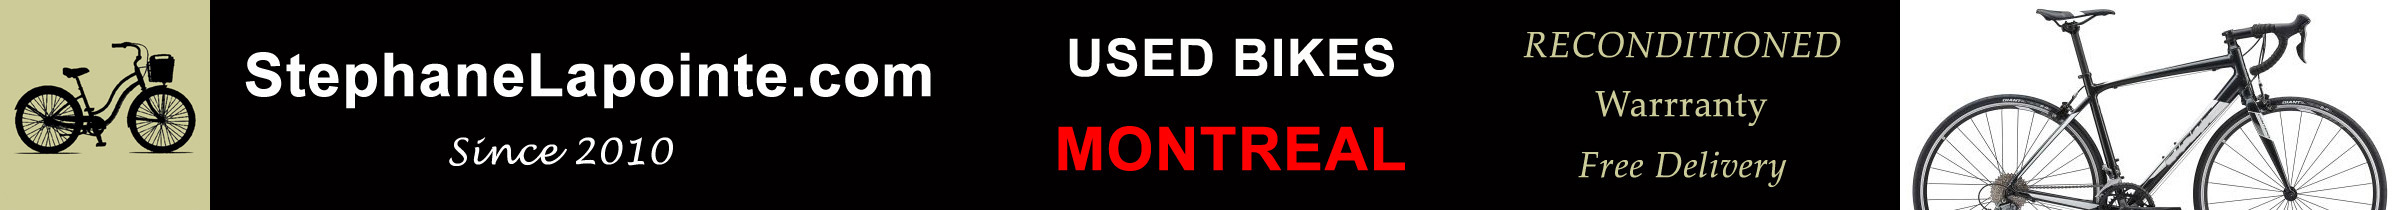 Used bikes in Montreal, modern and vintage road bikes, hybrid bikes, city bikes and more. Each bike carefully tuned by an expert - 30 DAY WARRANTY - FREE DELIVERY in Montreal. - StephaneLapointe.com